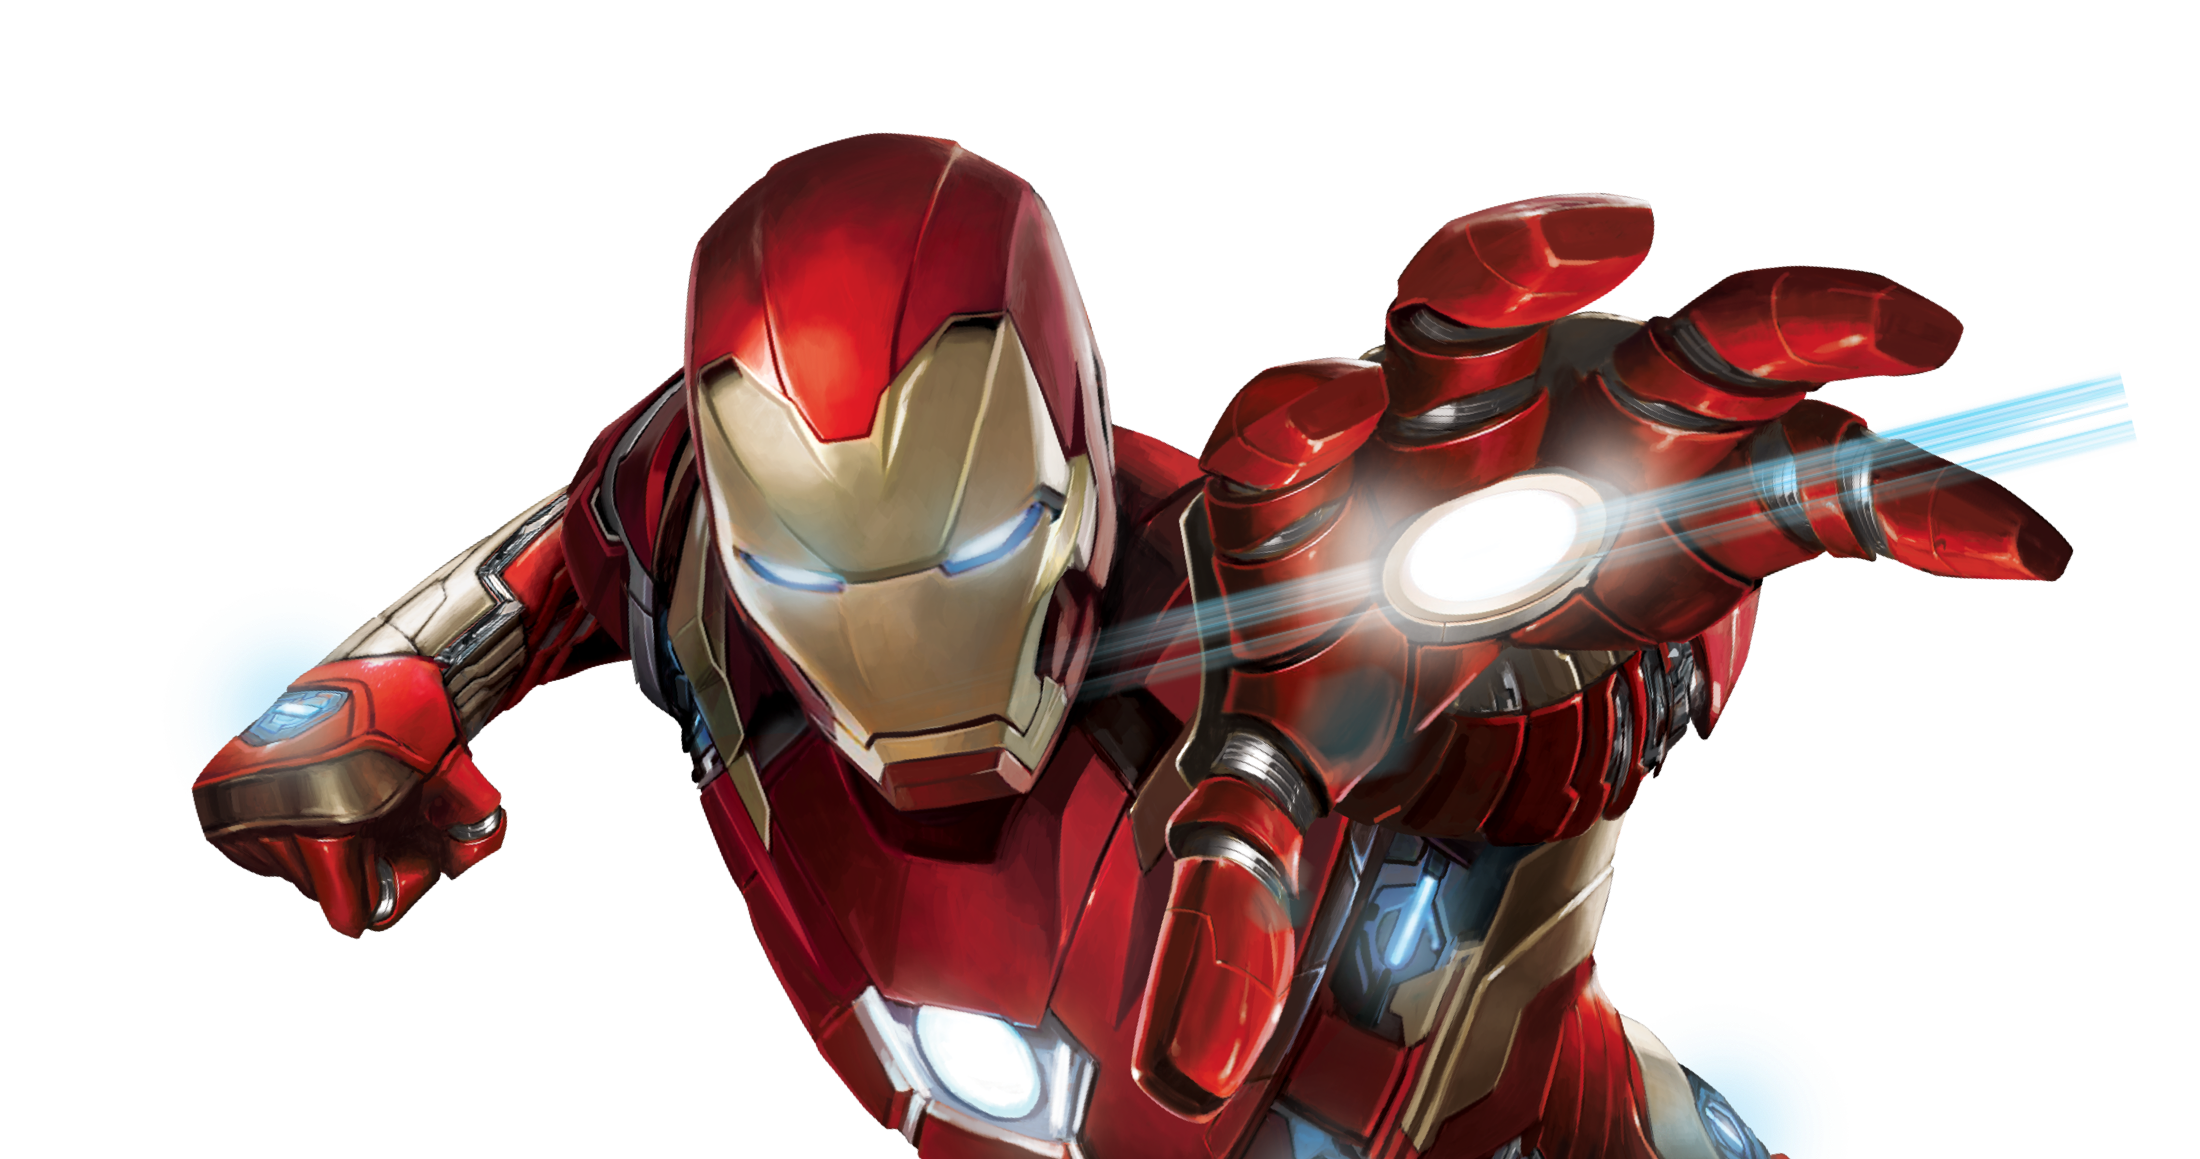 Png images of ironman. Flying image purepng free